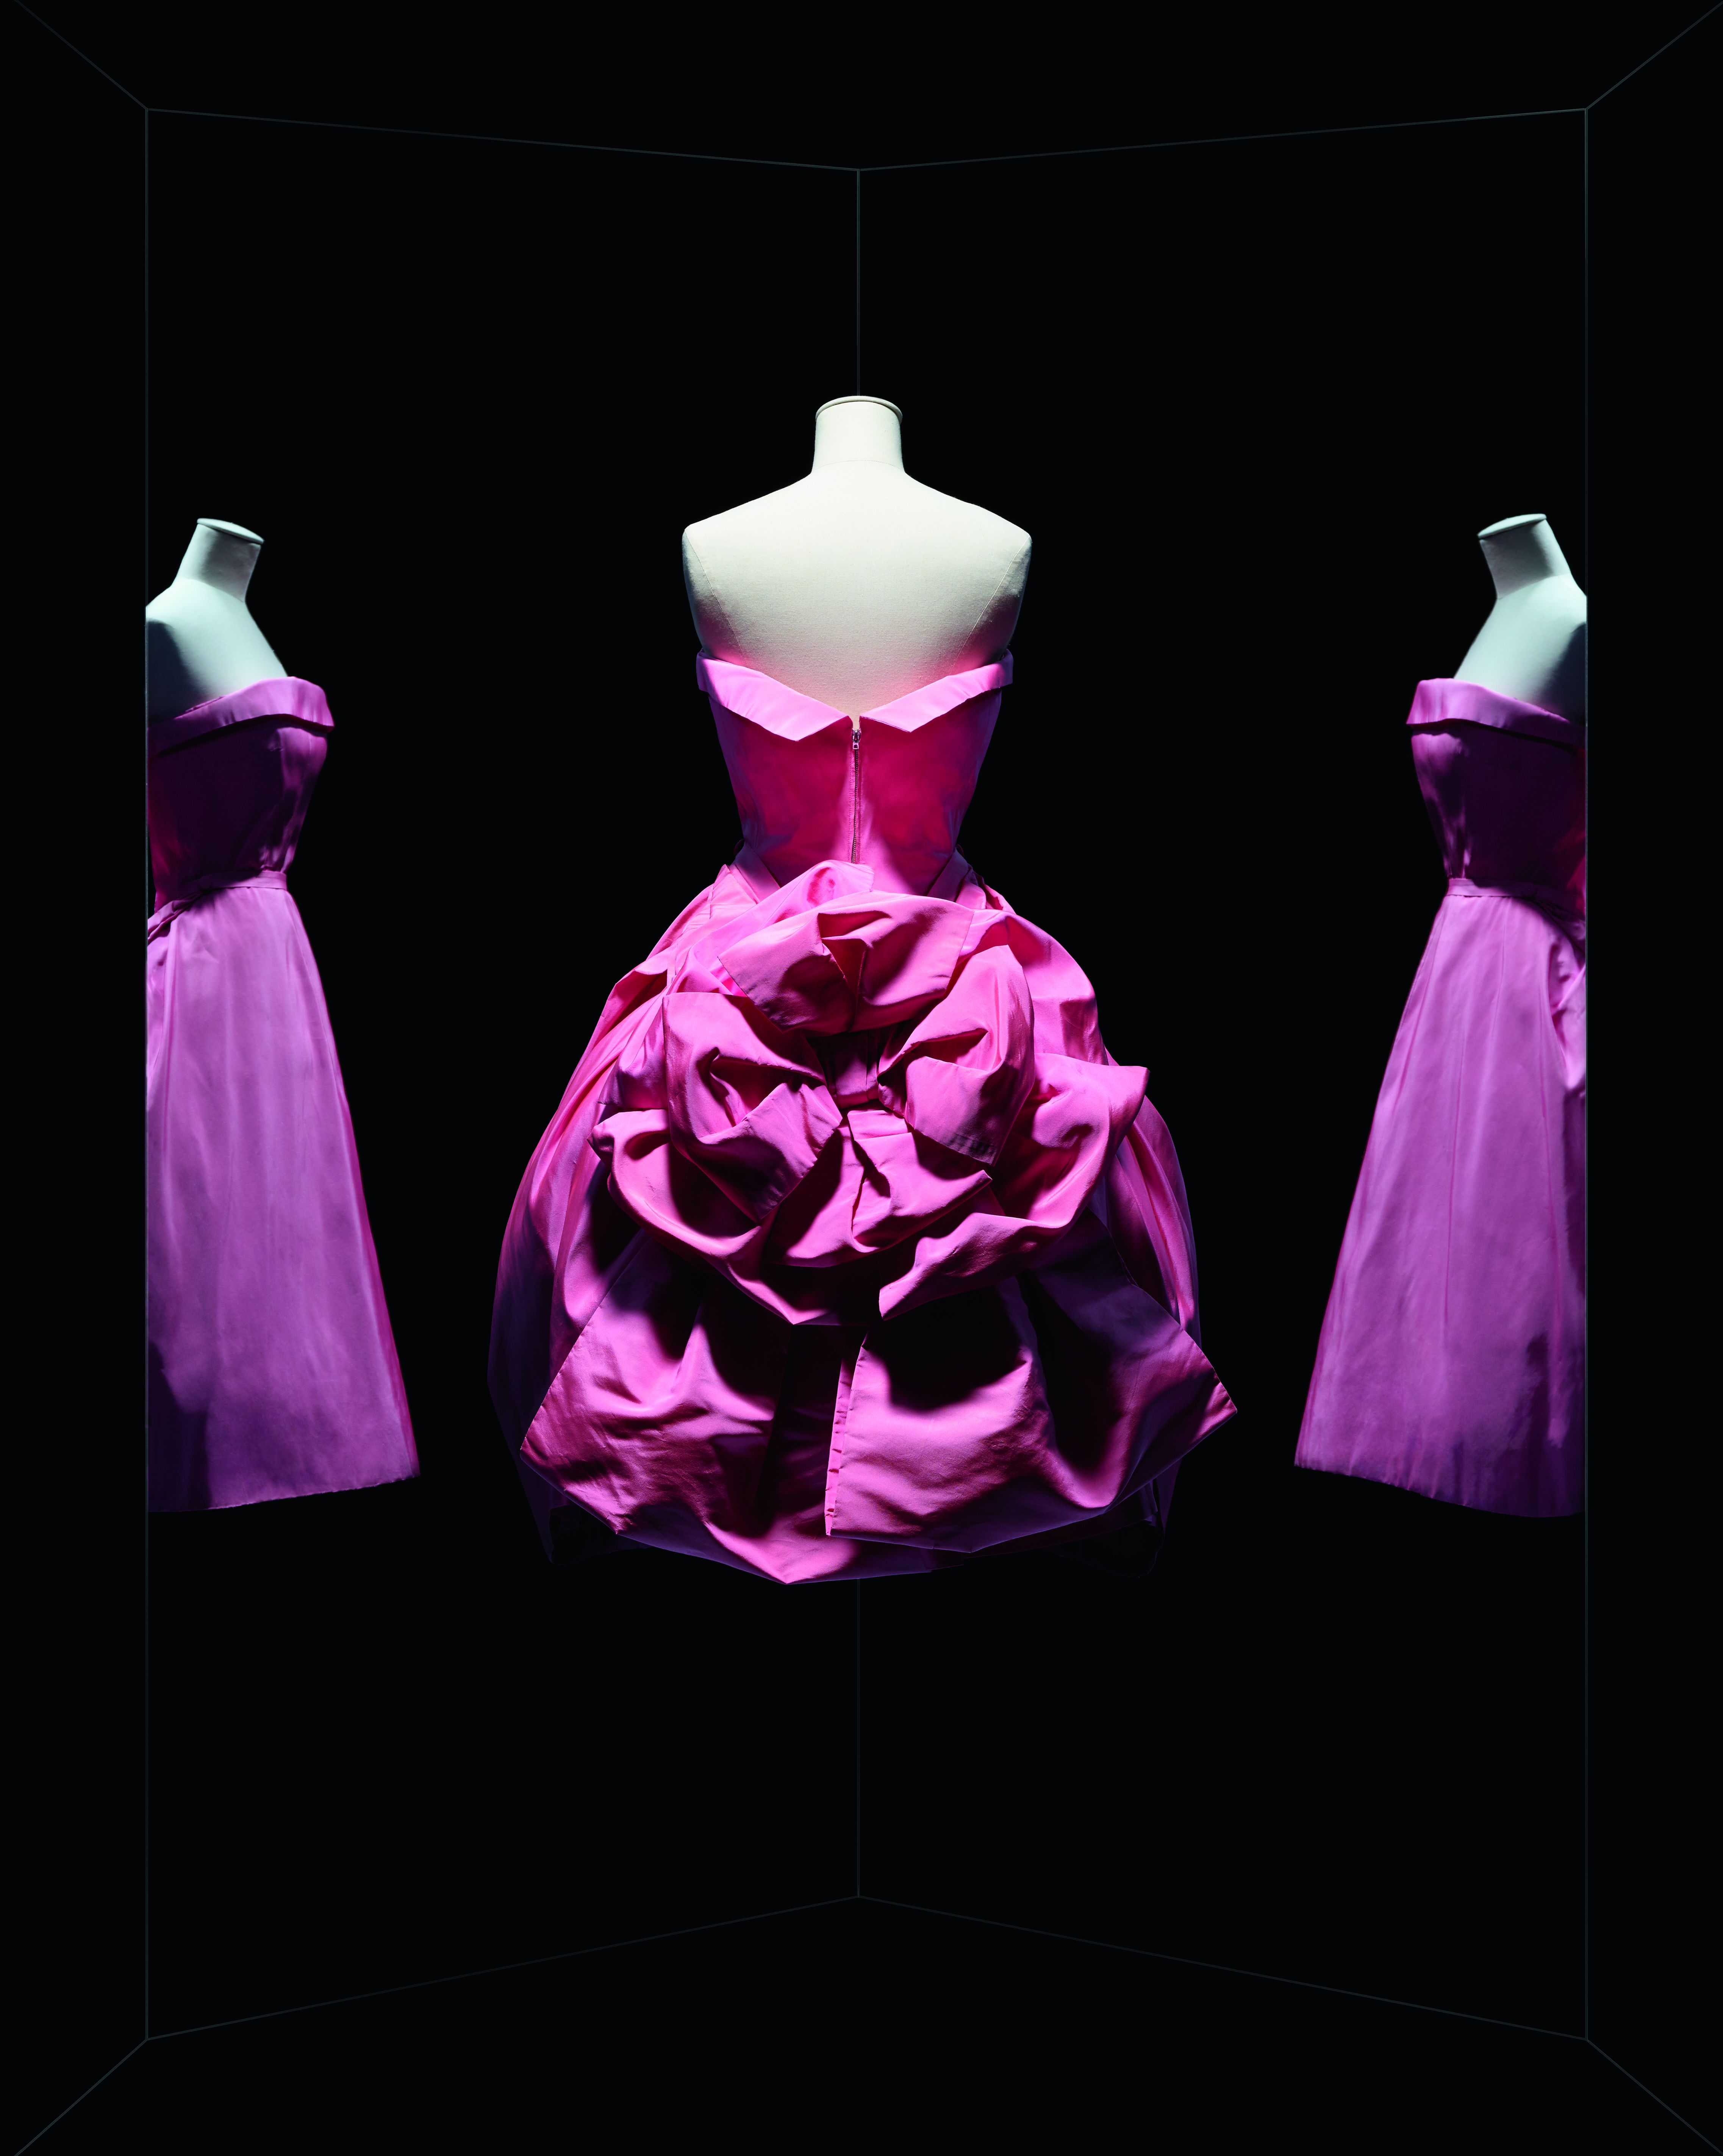 Christian Dior, Opéra Bouffe gown, Haute Couture, Fall-Winter 1956